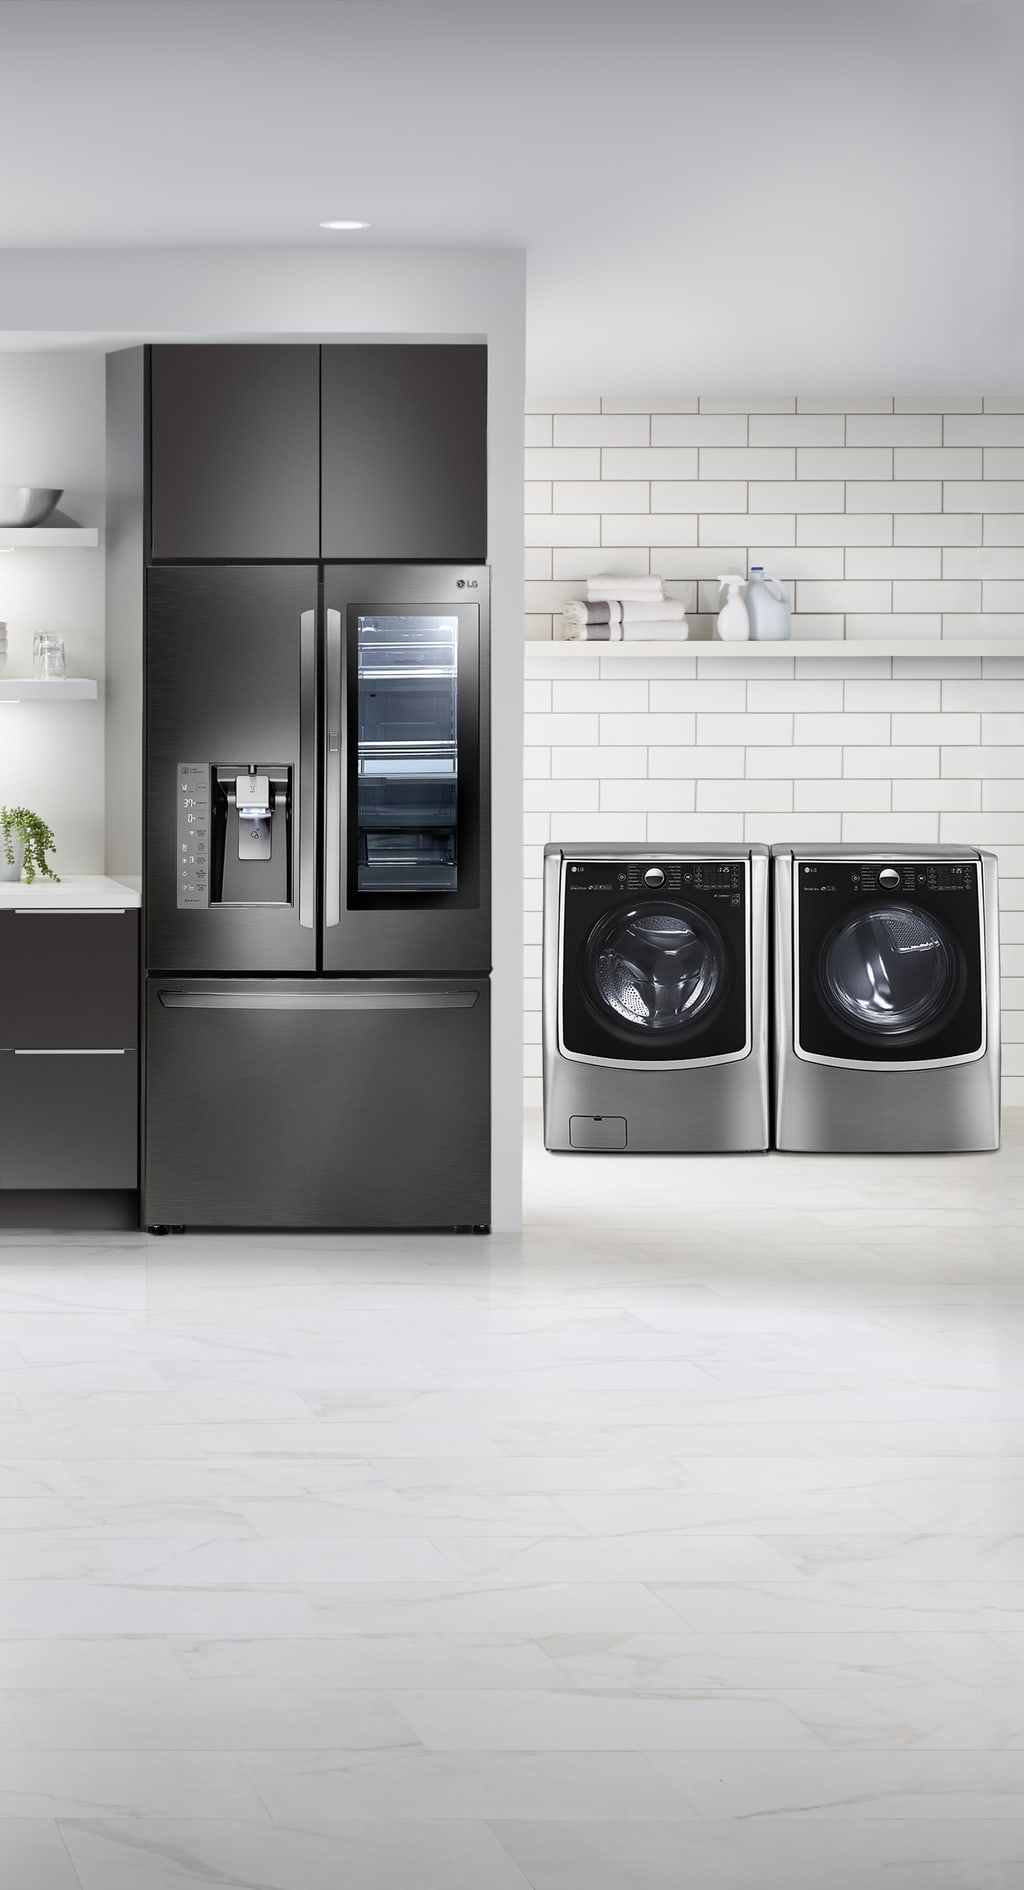 The best deals on new appliances are always at Best Buy, so if you are like me and feel the need to redecorate with the arrival of Spring, look no further!